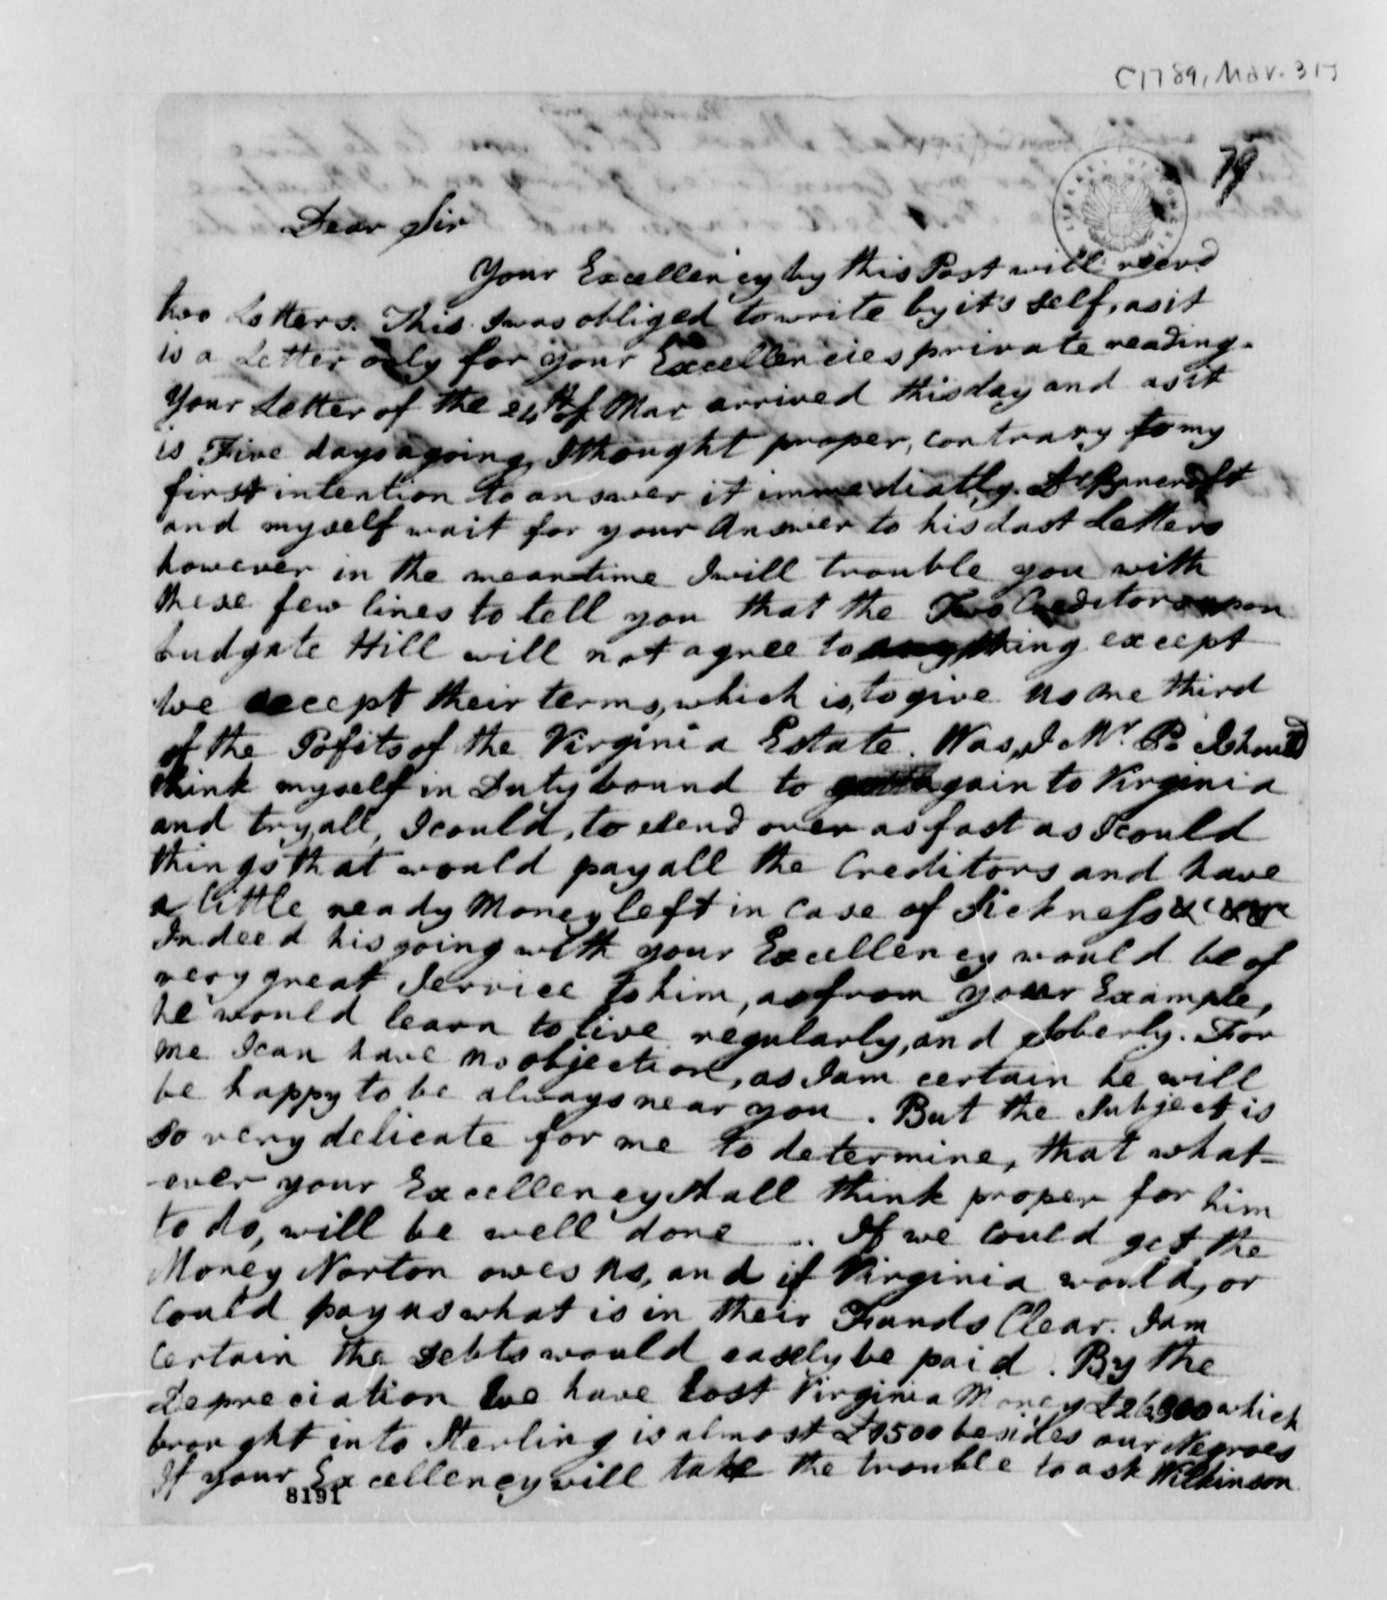 Lucy Ludwell Paradise to Thomas Jefferson, March 31, 1789